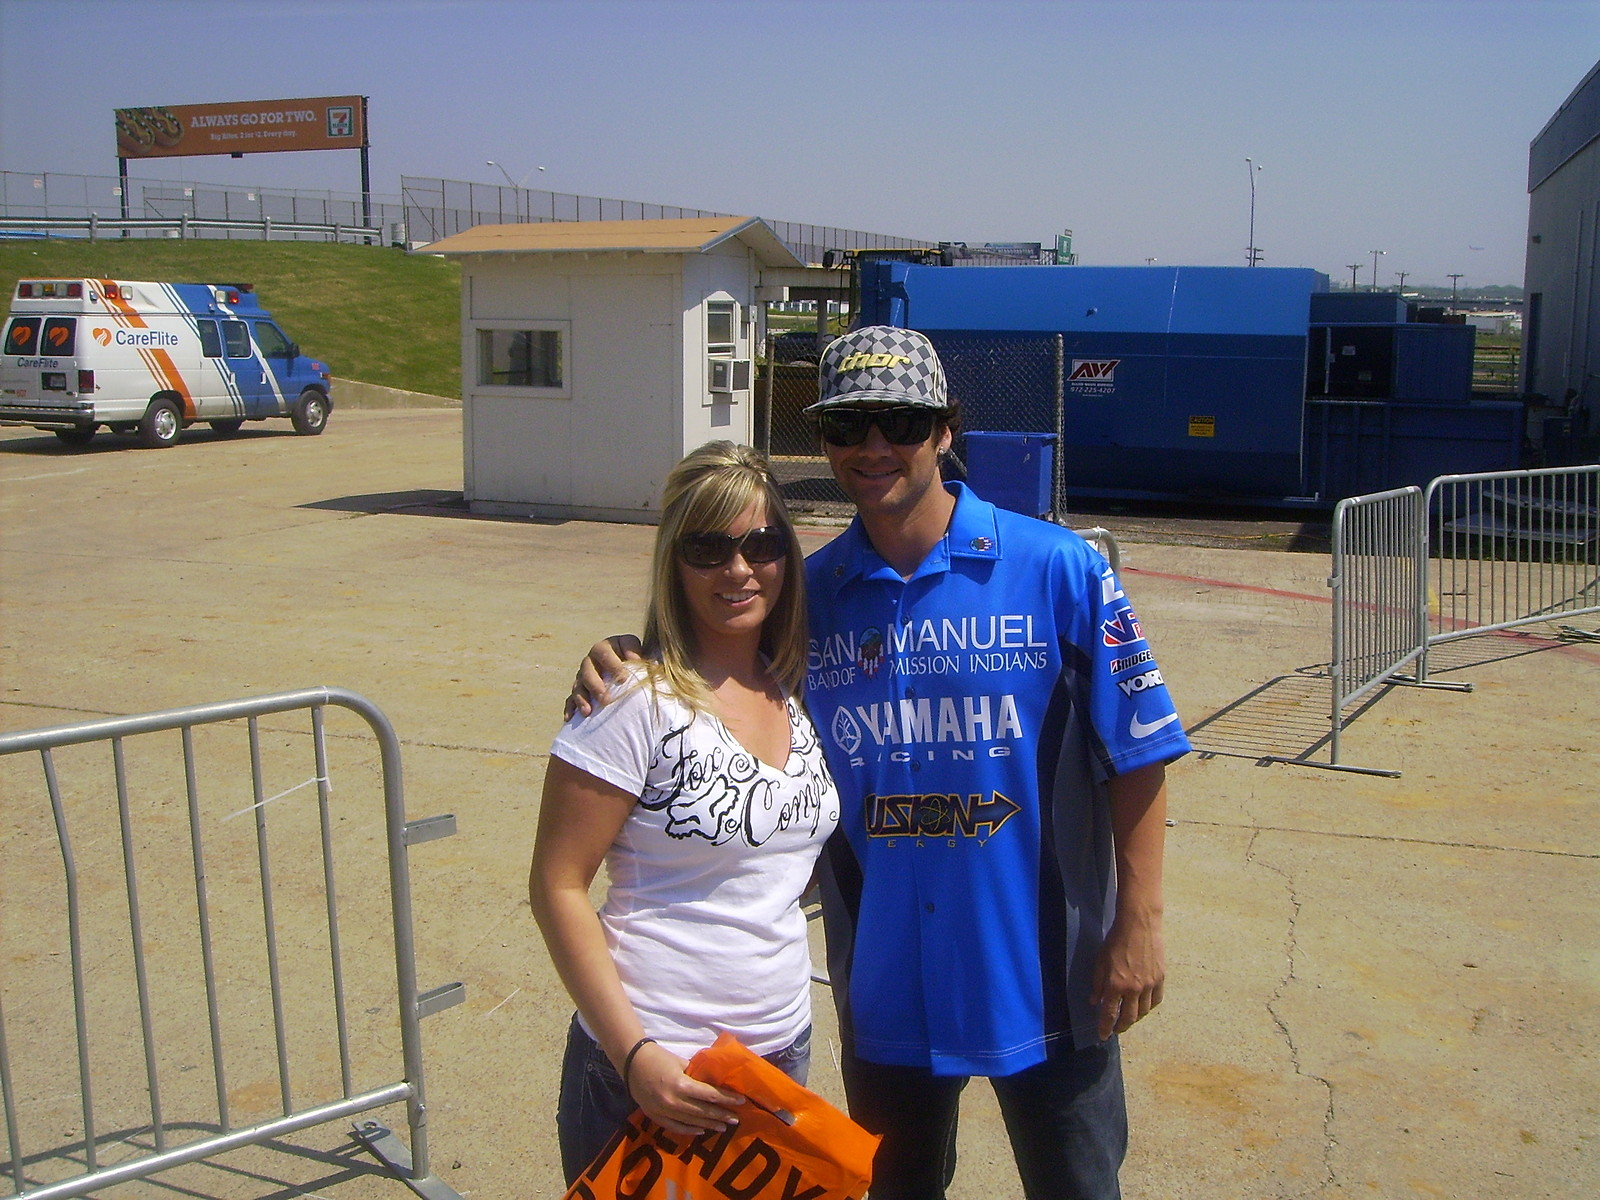 my wife and reed - Slim Bill - Motocross Pictures - Vital MX